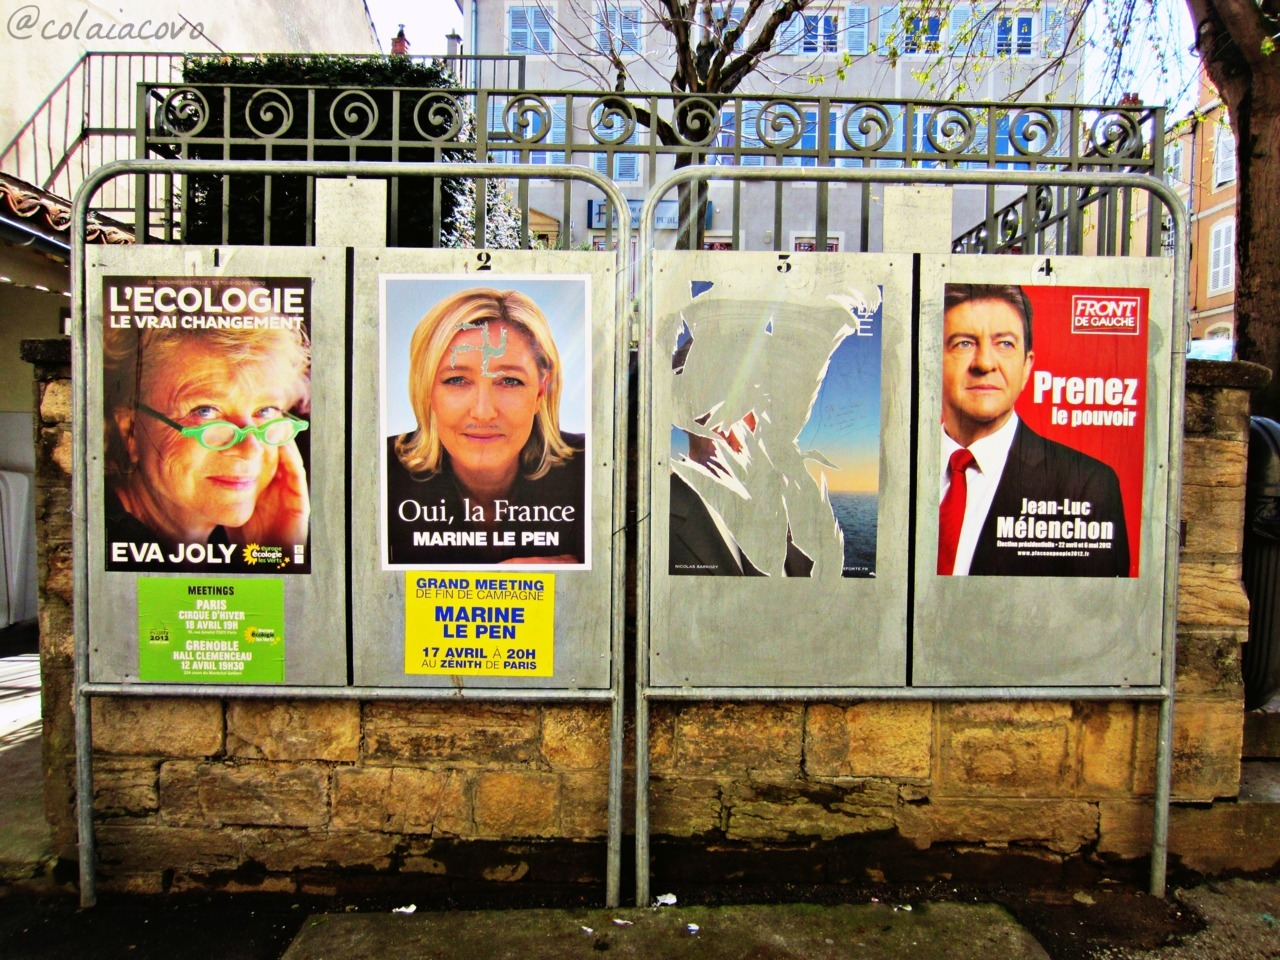 3hundredandsixty6days:  —It's election time in France The torn poster? Why that of Nicolas Sarkozy, of course. This country's love for their current President is overwhelming…